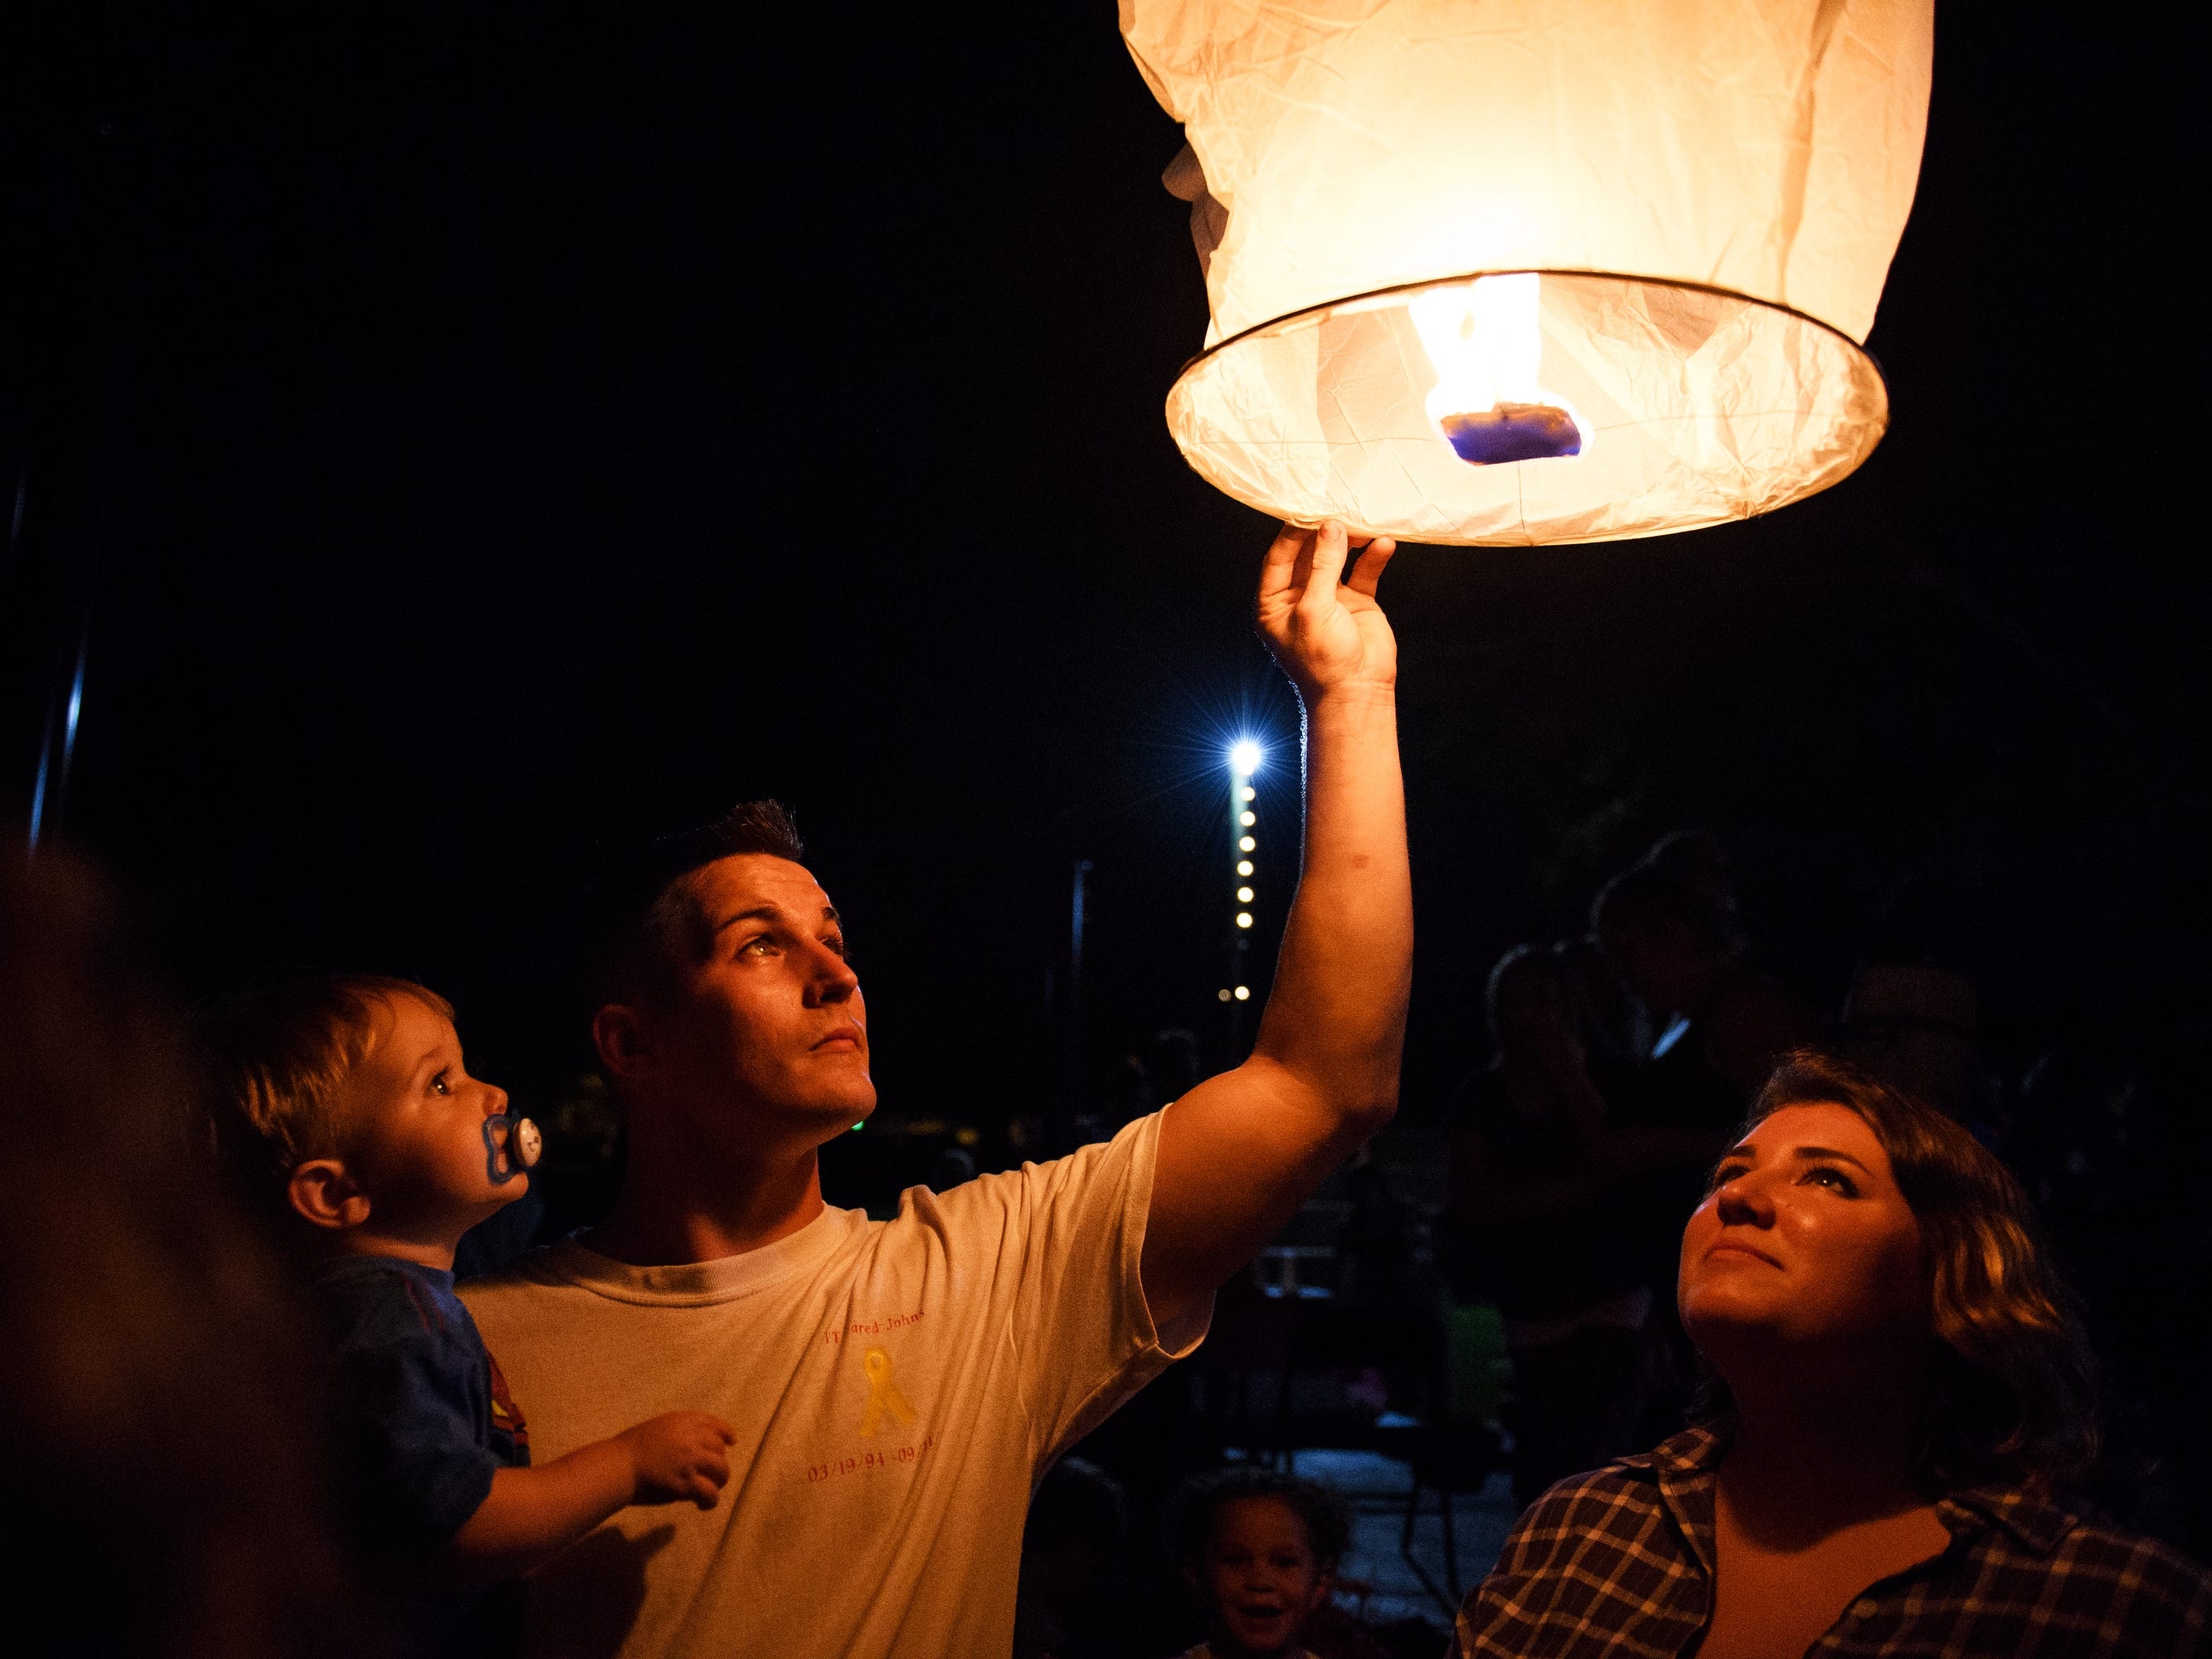 Jacob Johns holds his nephew, Jaxson, 1, as he and his fiancee Paige Torres release a paper lantern in honor of Jacob's twin brother Jared at Simpsonville City Park on Sunday, Sept. 23, 2018. Jared Johns, the father of Jaxson and a veteran of the U.S. Army, suffered from PTSD and died by suicide on Tuesday, Sept. 11, 2018.